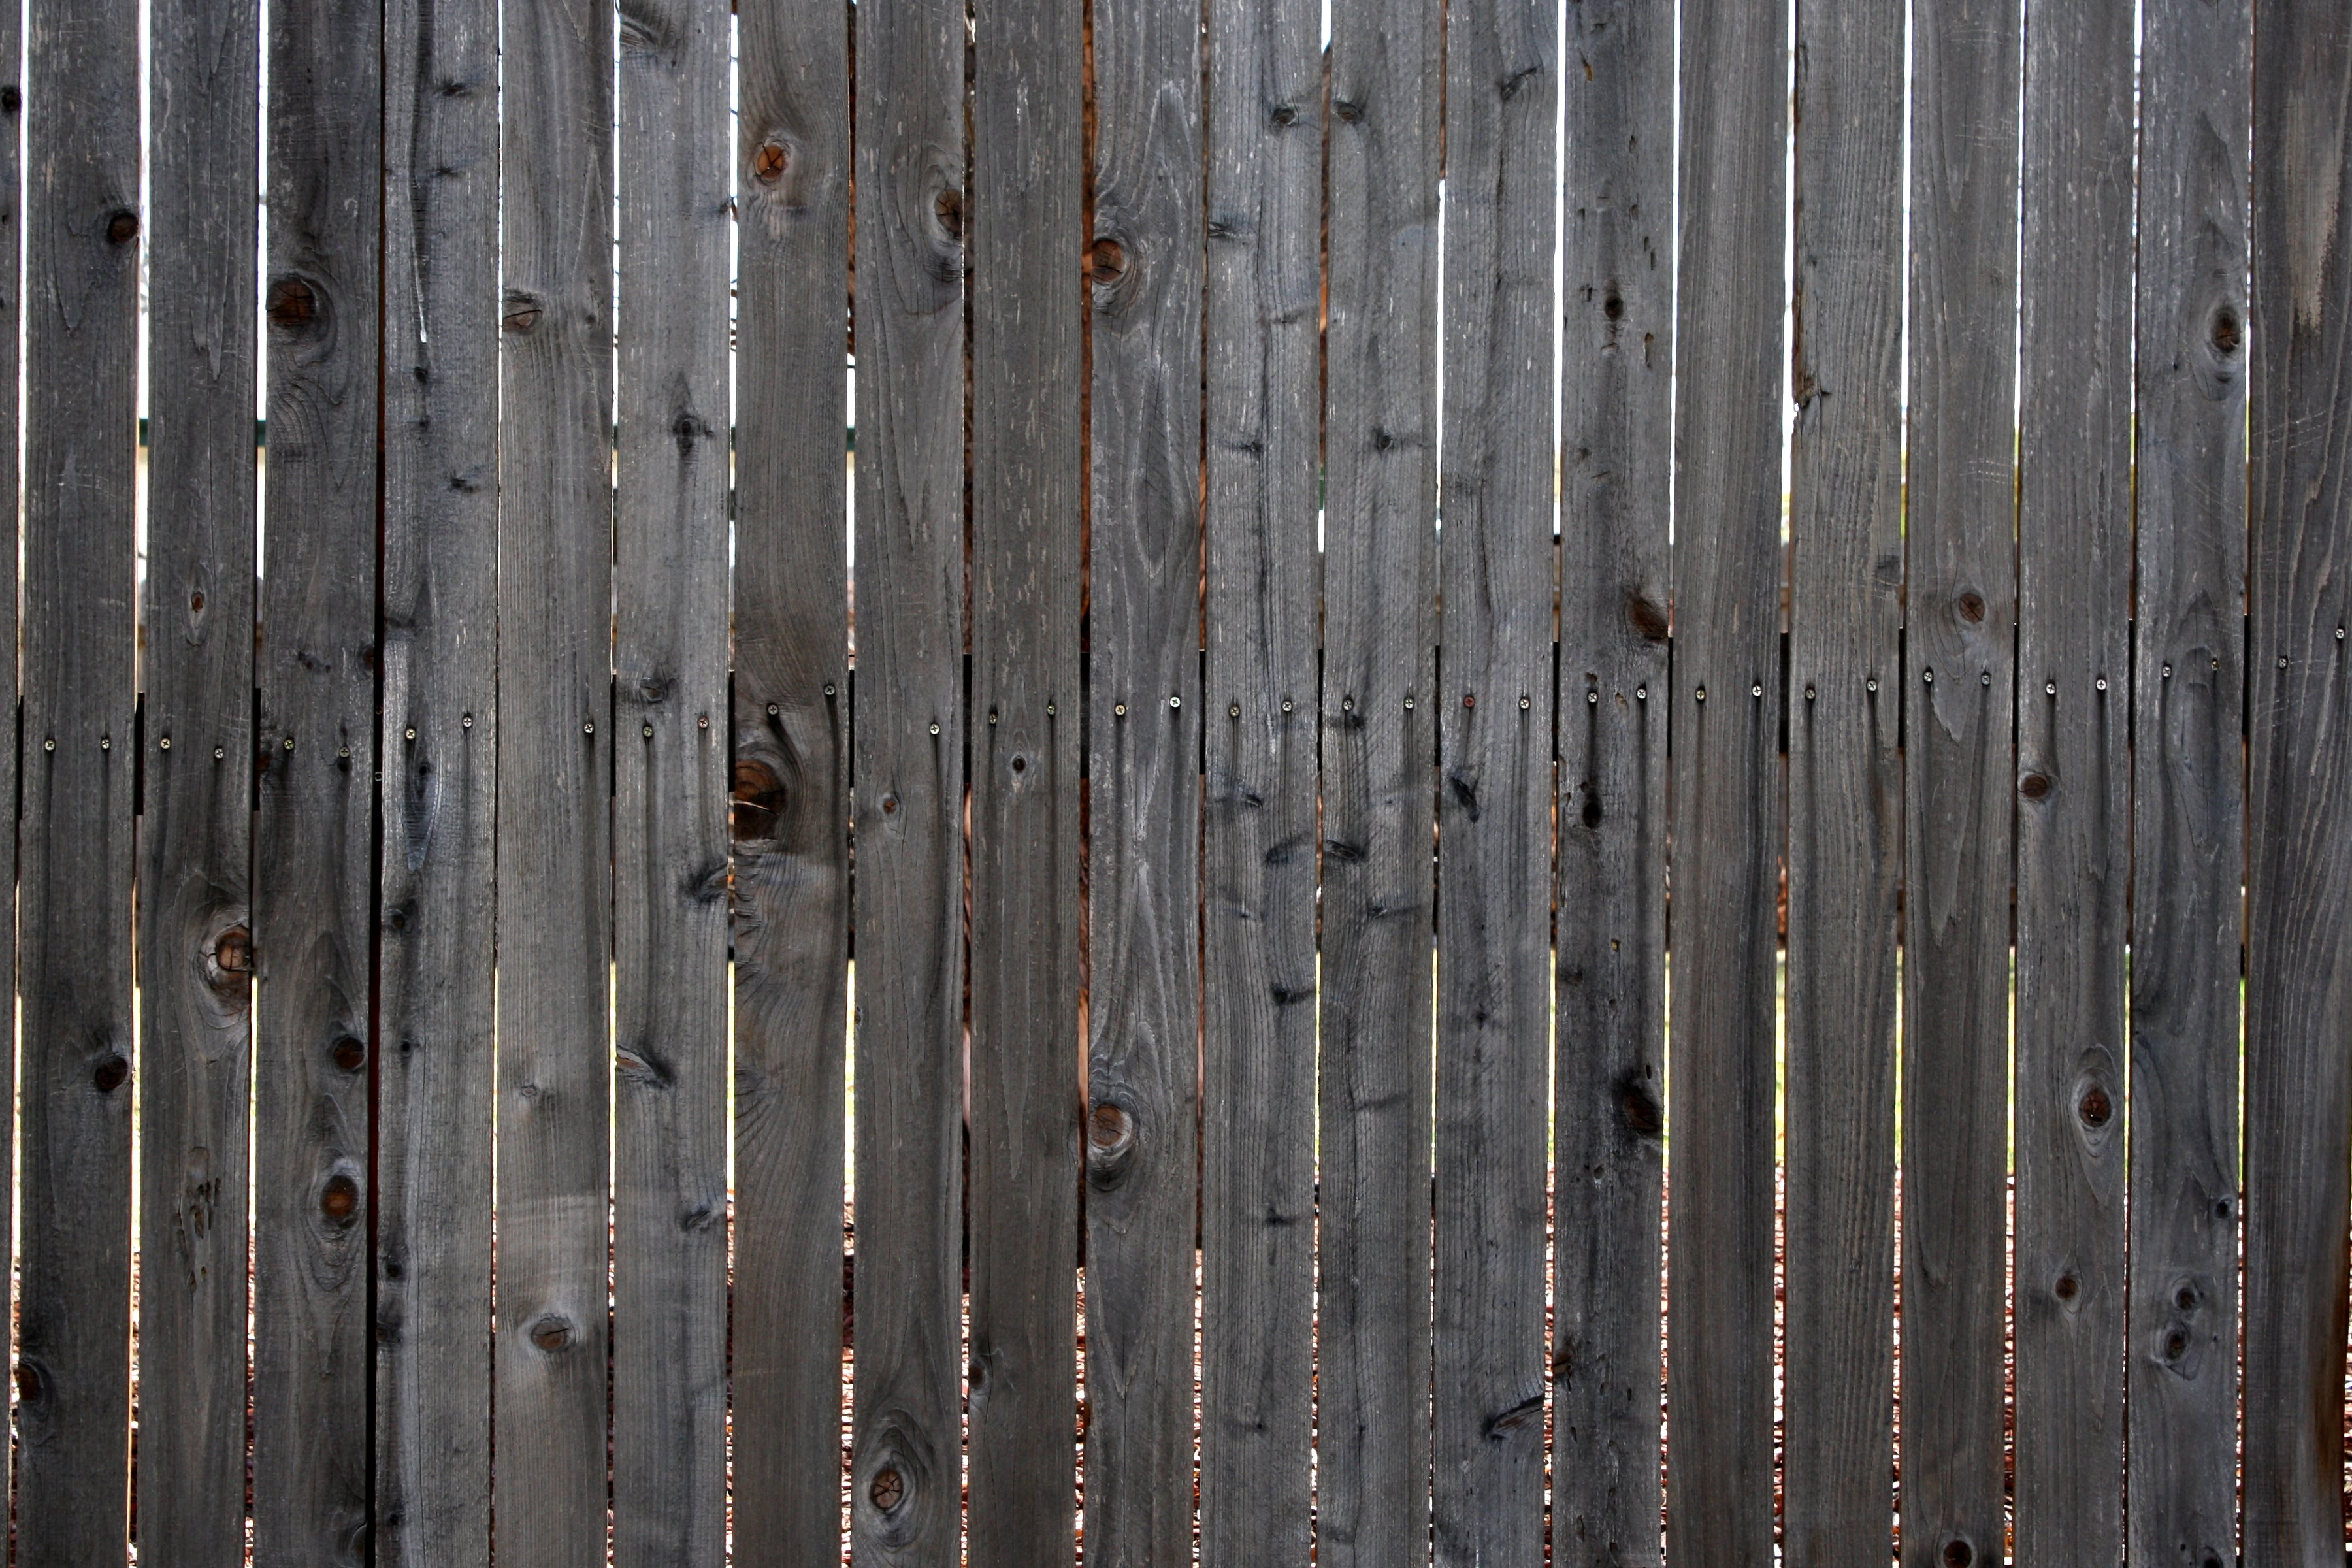 Old Weathered Wooden Fence Texture Picture Photograph Photos 3600x2400